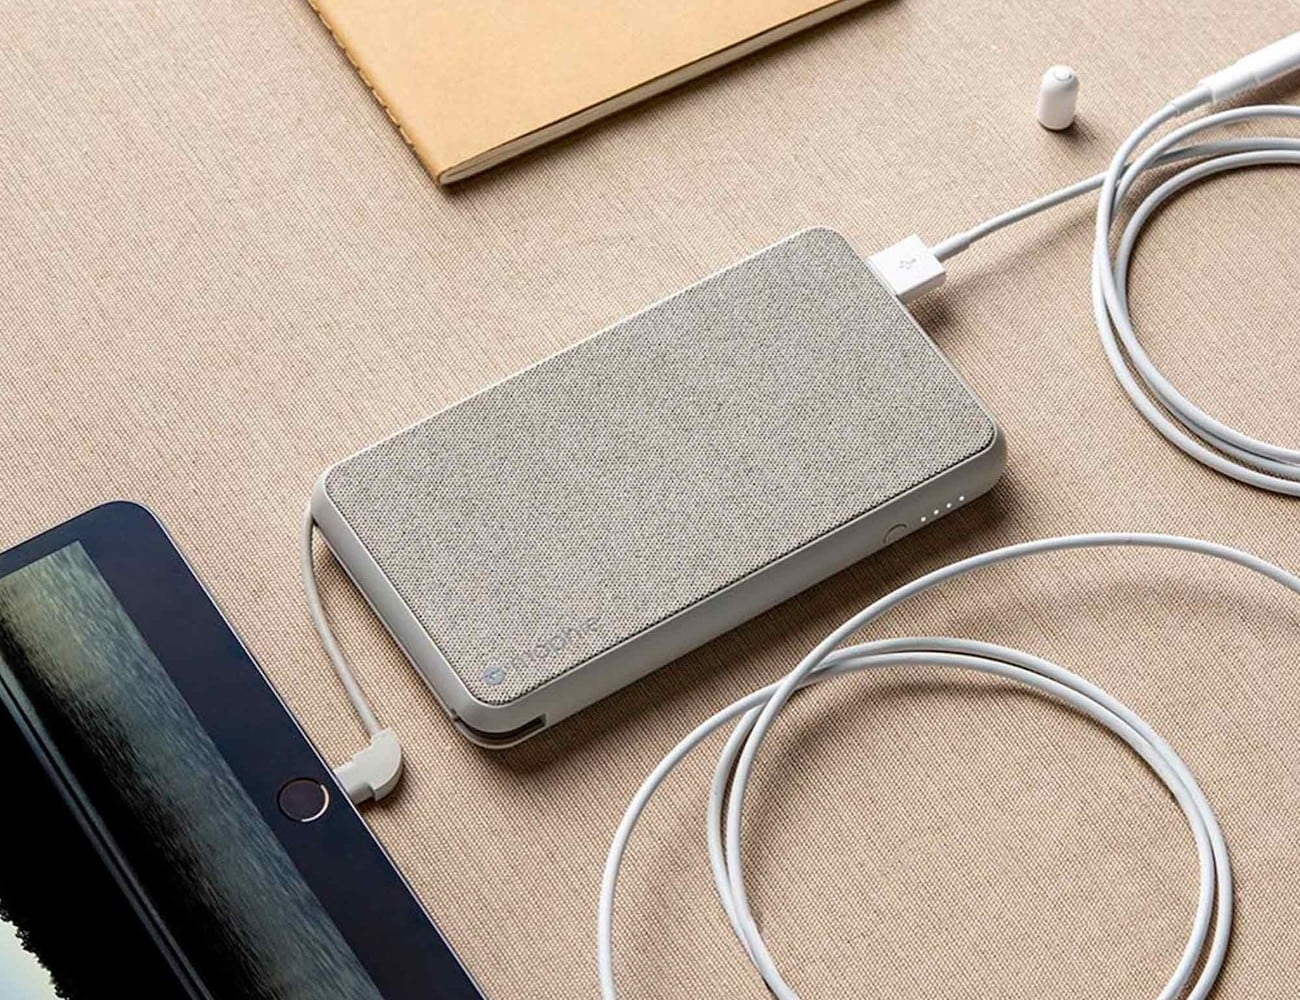 mophie powerstation plus XL with Lightning connector Apple Power Bank provides 10,000 mAh of battery power